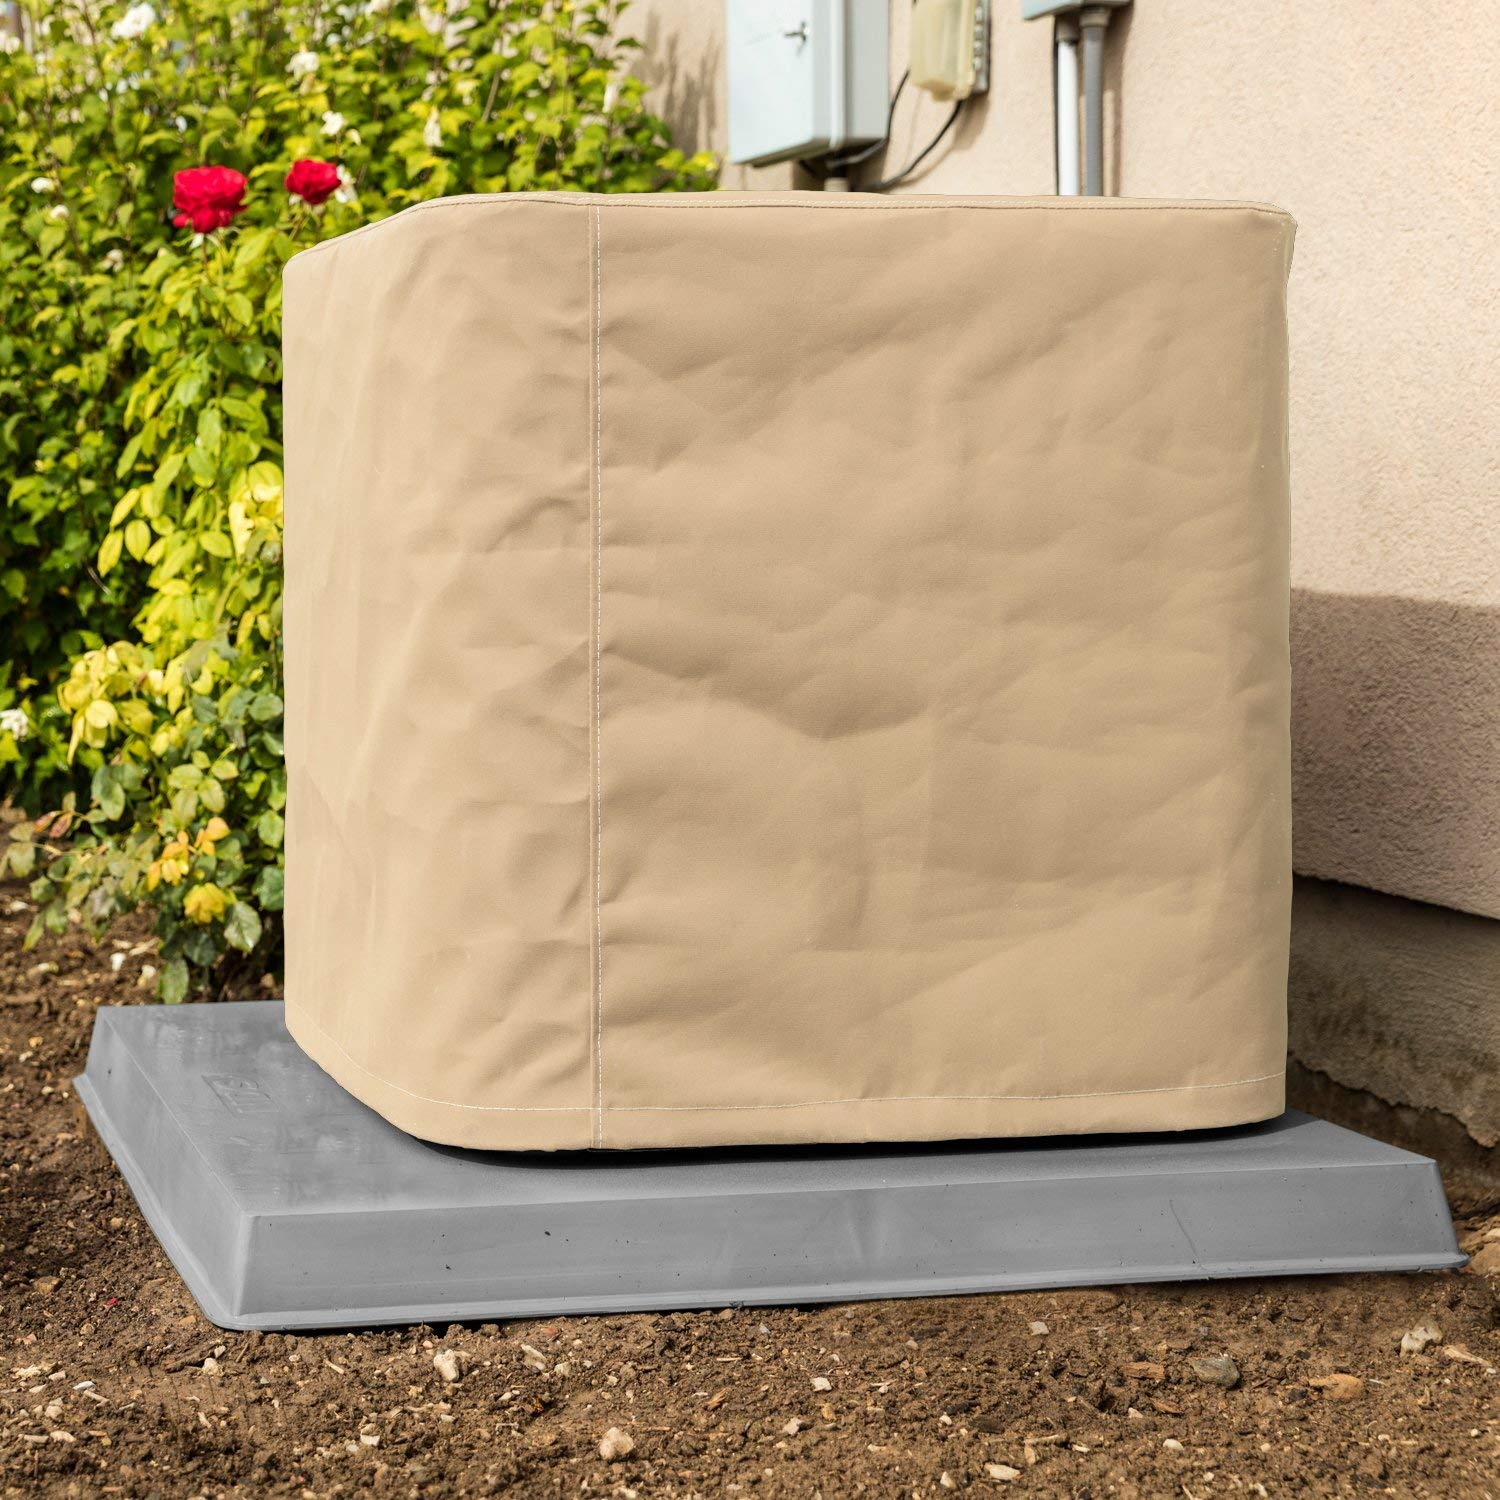 SugarHouse Outdoor Air Conditioner Cover - Premium Marine Canvas - Made in the USA - 5-Year Warranty - 24'' x 24'' x 28'' - Tan